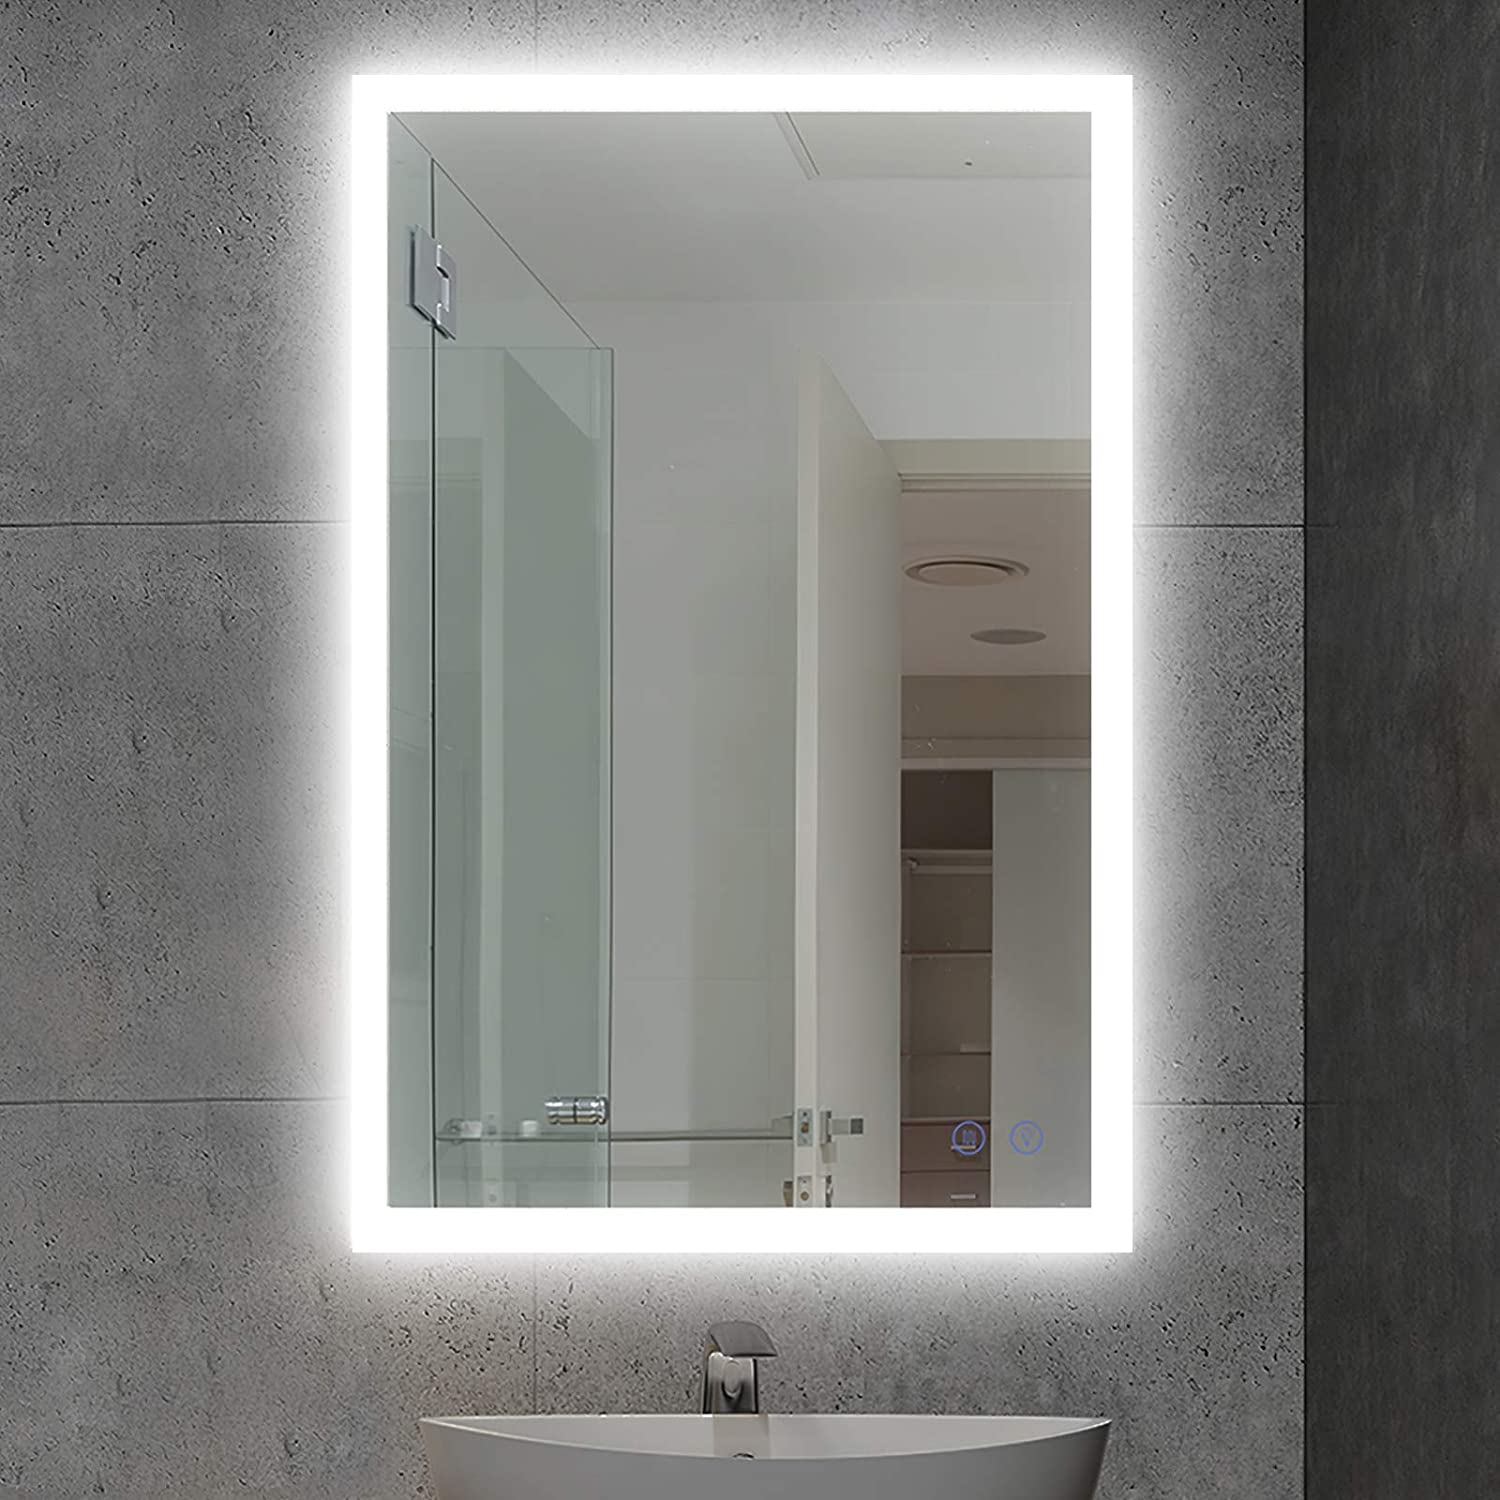 Amazon Com Citymoda 28x20 Inch Lighted Bathroom Makeup Mirror Led Wall Mount Frameless Rectangle Smart Bathroom Vanity Mirror With Touch Button Dimmable Horizontal Vertical Anti Fog Change Color Temperature